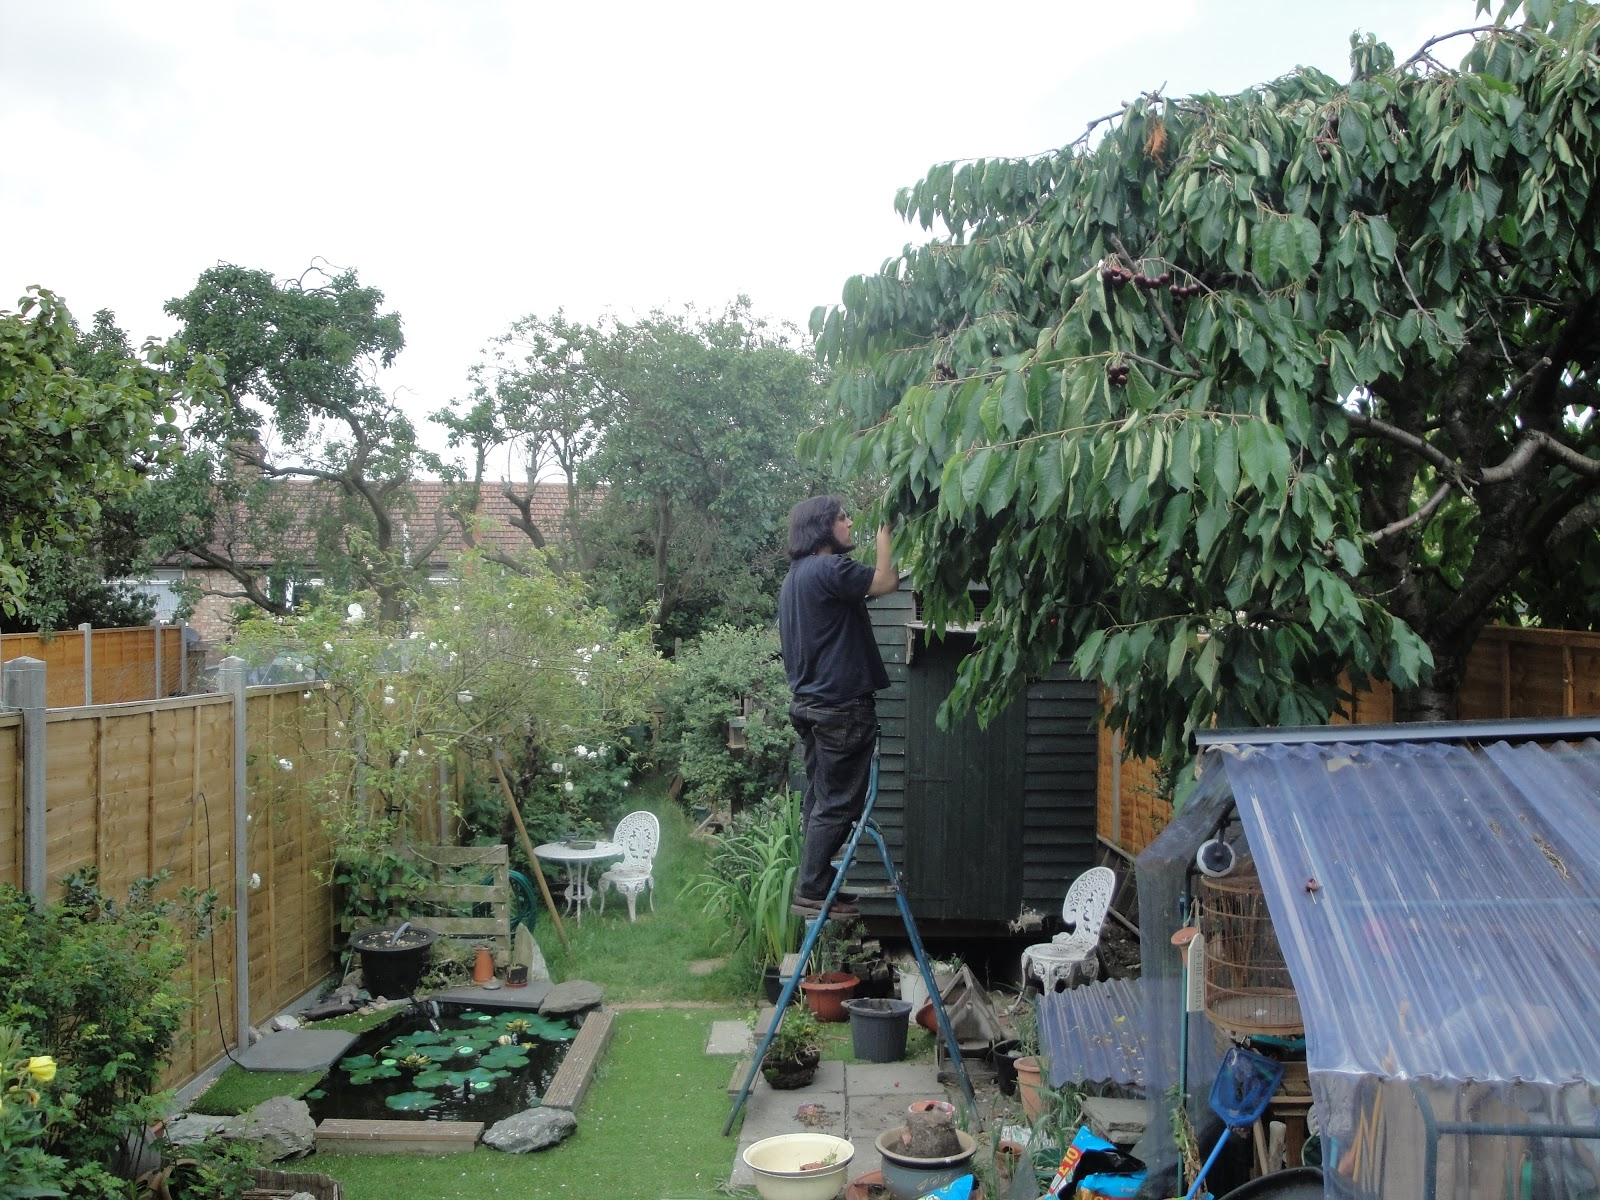 Bloke up a ladder picking the heck outta some cherries.